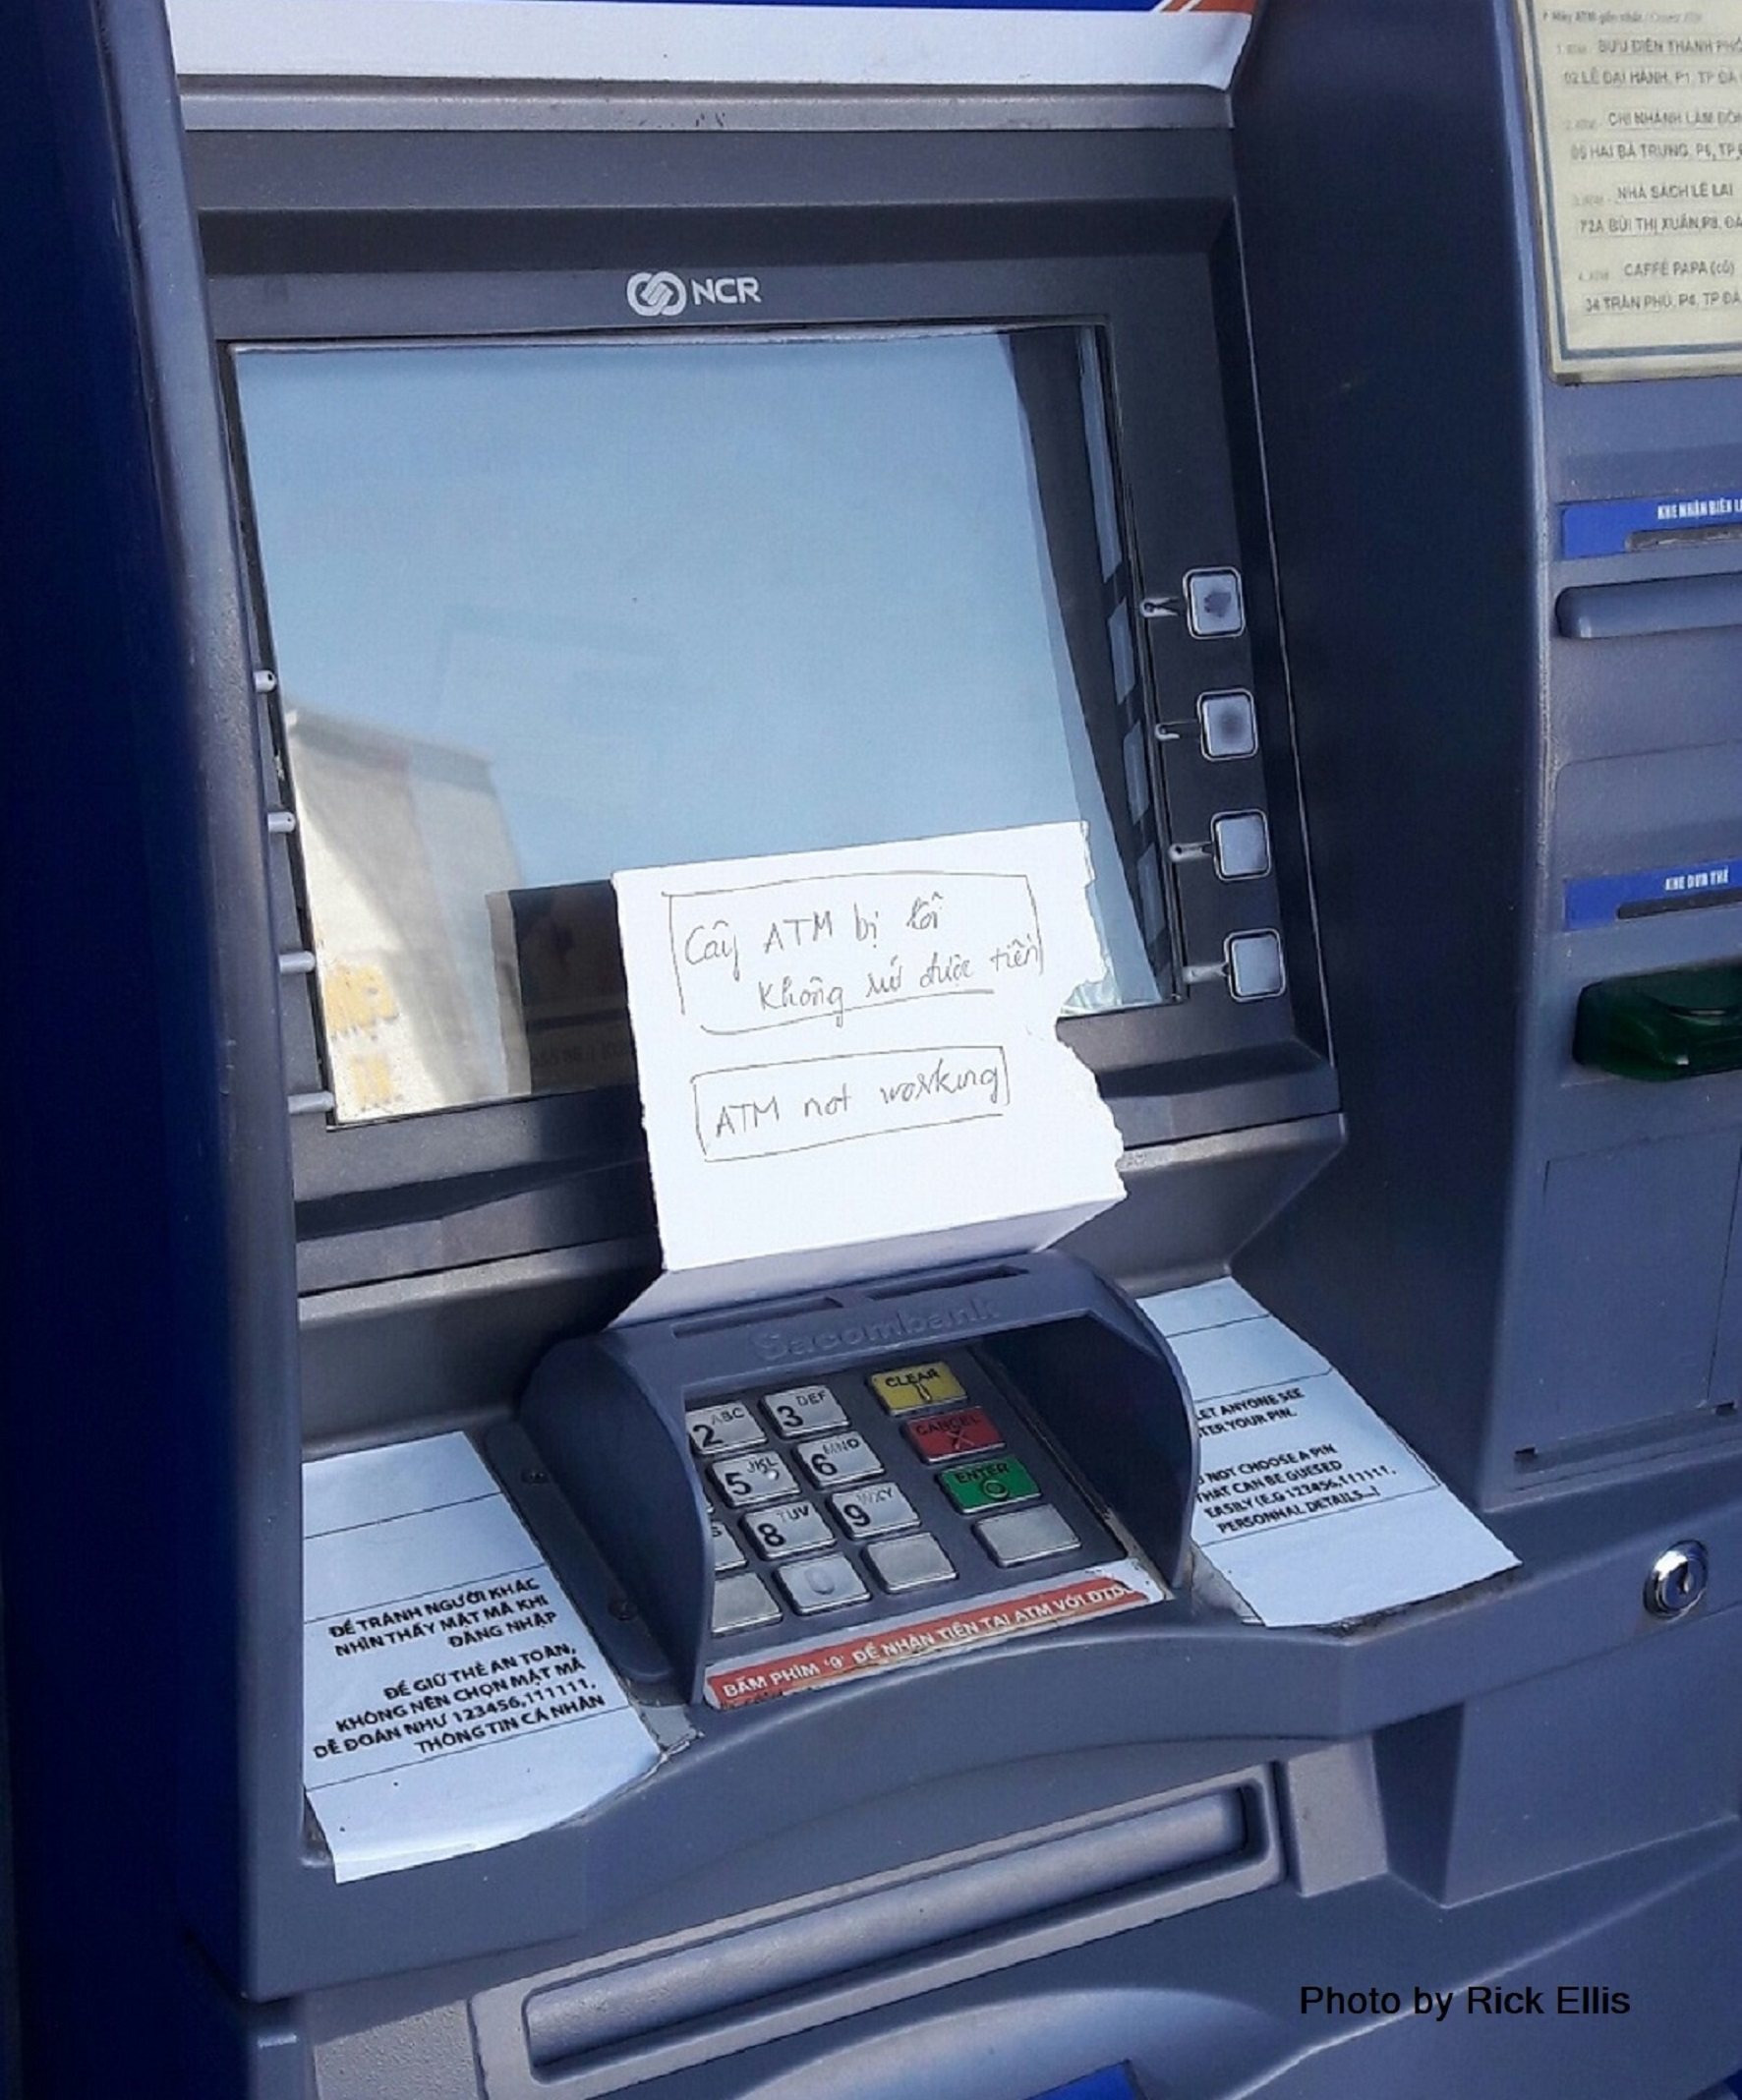 Bilingual warning: 'ATM not working'